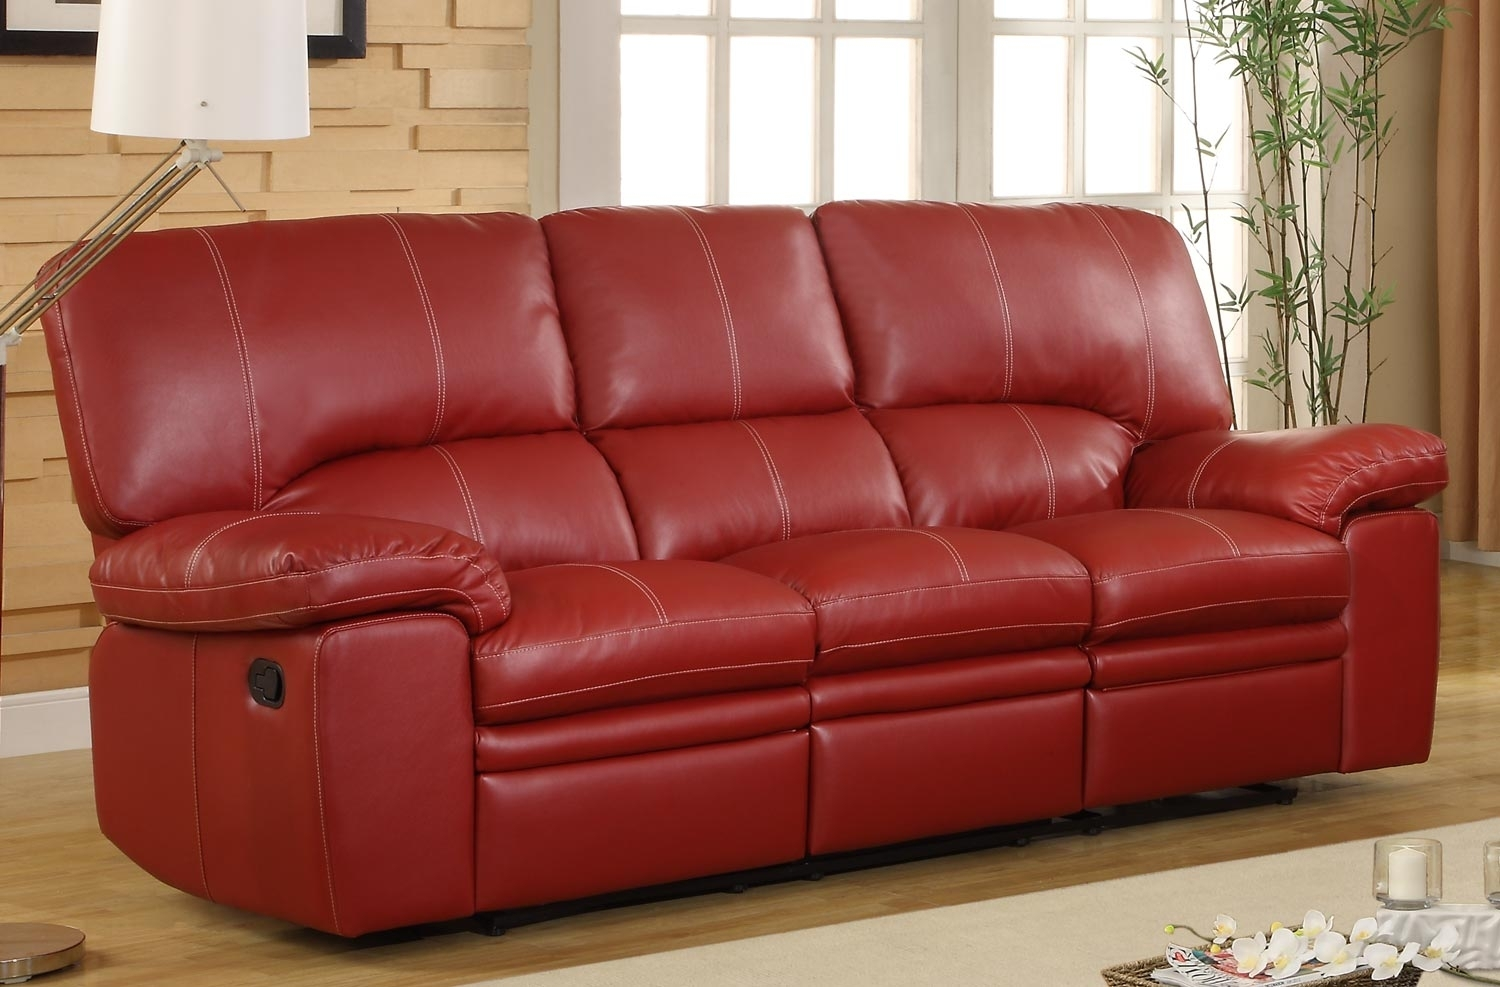 Inspirational Red Leather Reclining Sofa 79 For Office Sofa Ideas Pertaining To Red Leather Reclining Sofas And Loveseats (Image 5 of 10)